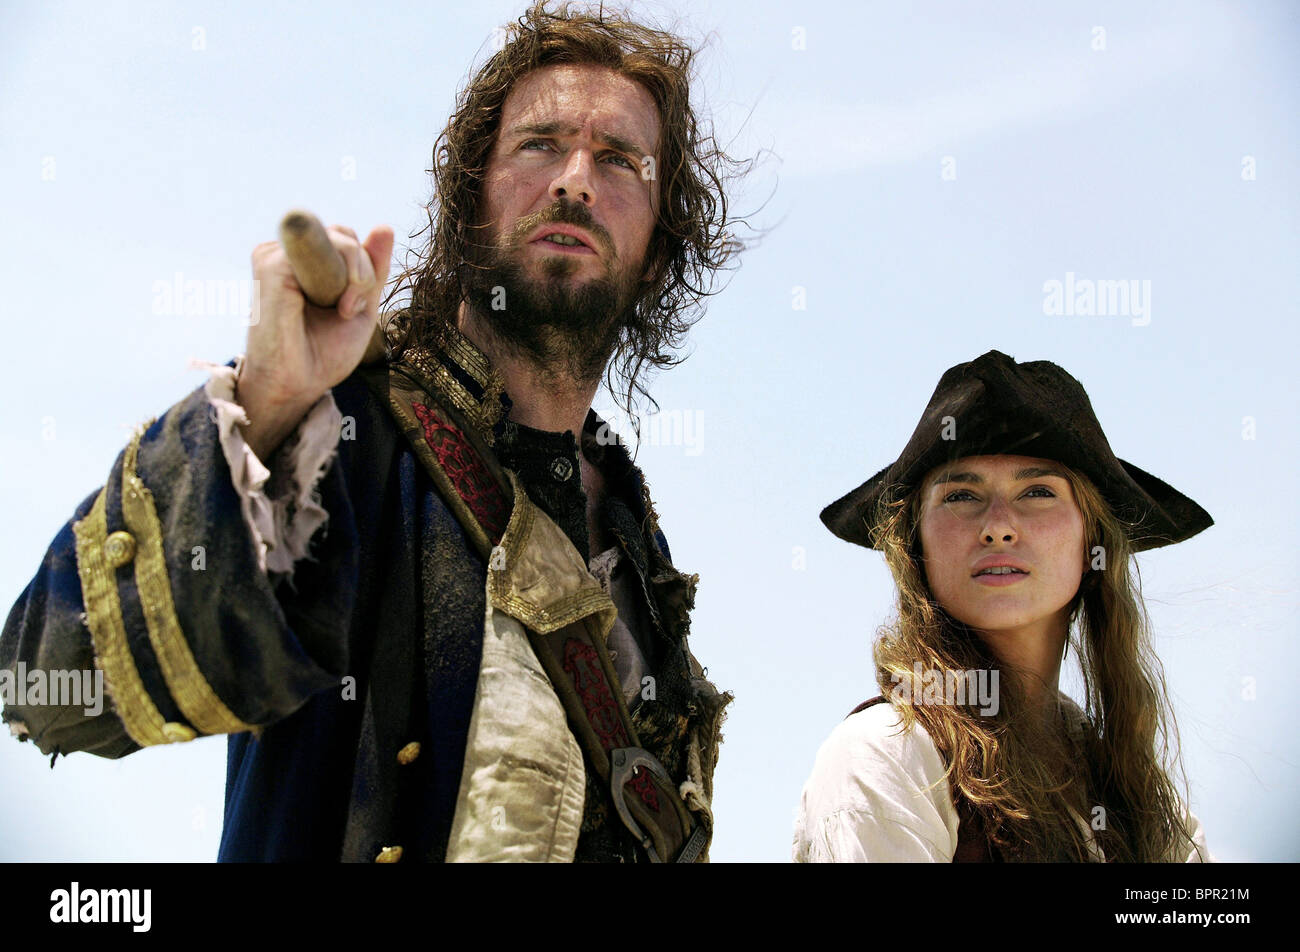 JACK DAVENPORT & KEIRA KNIGHTLEY PIRATES OF THE CARIBBEAN: DEAD MAN'S CHEST (2006) - Stock Image